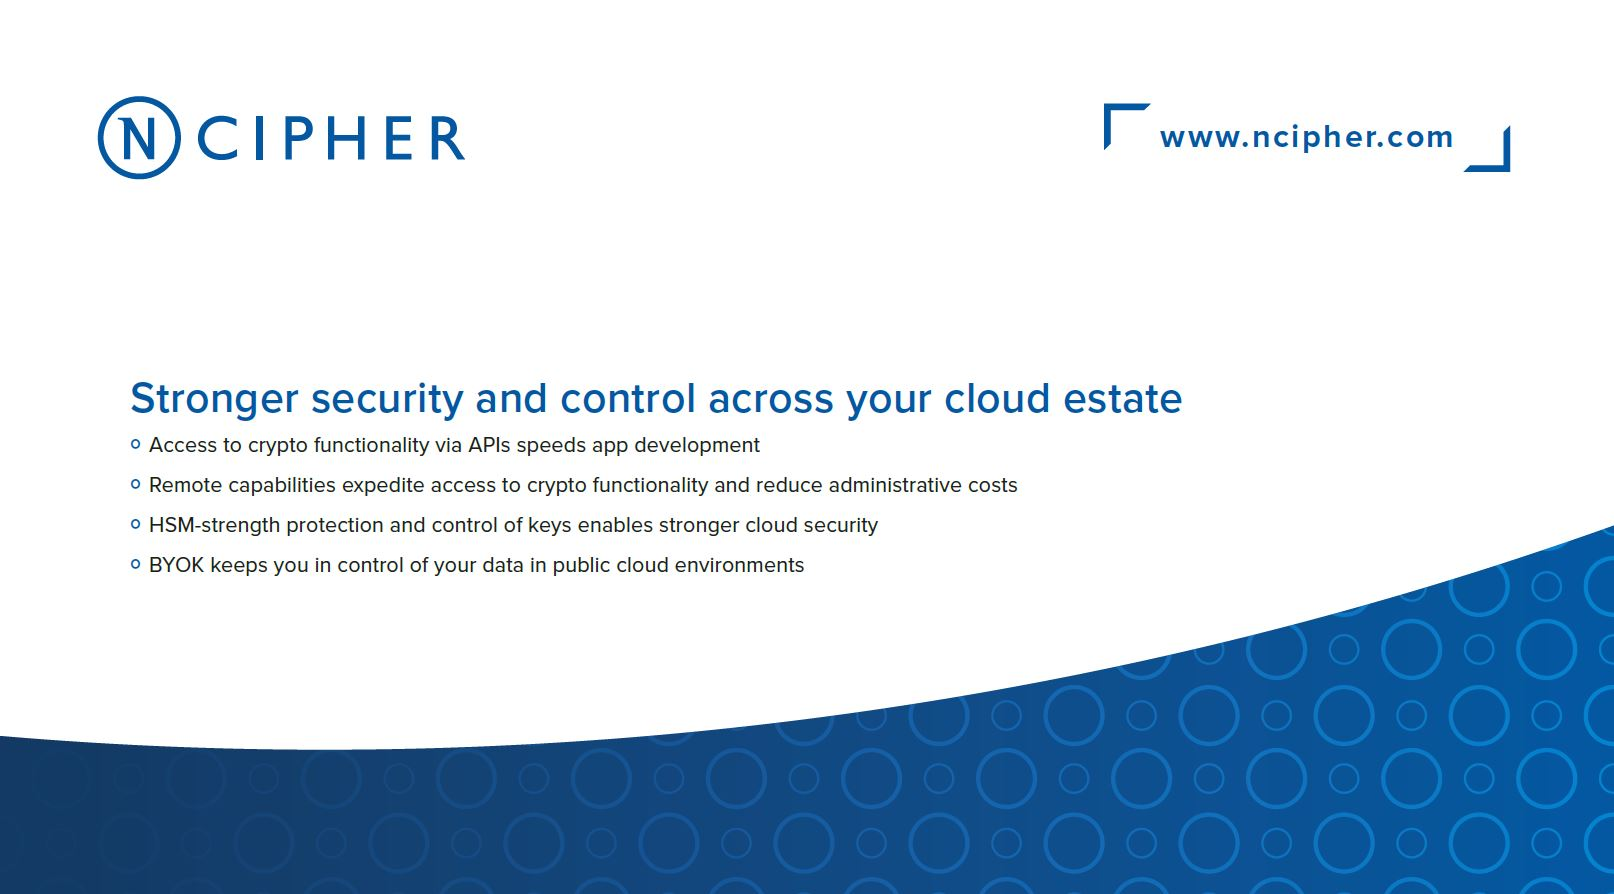 The Need for Stronger Security & Control Across Your Cloud Estate